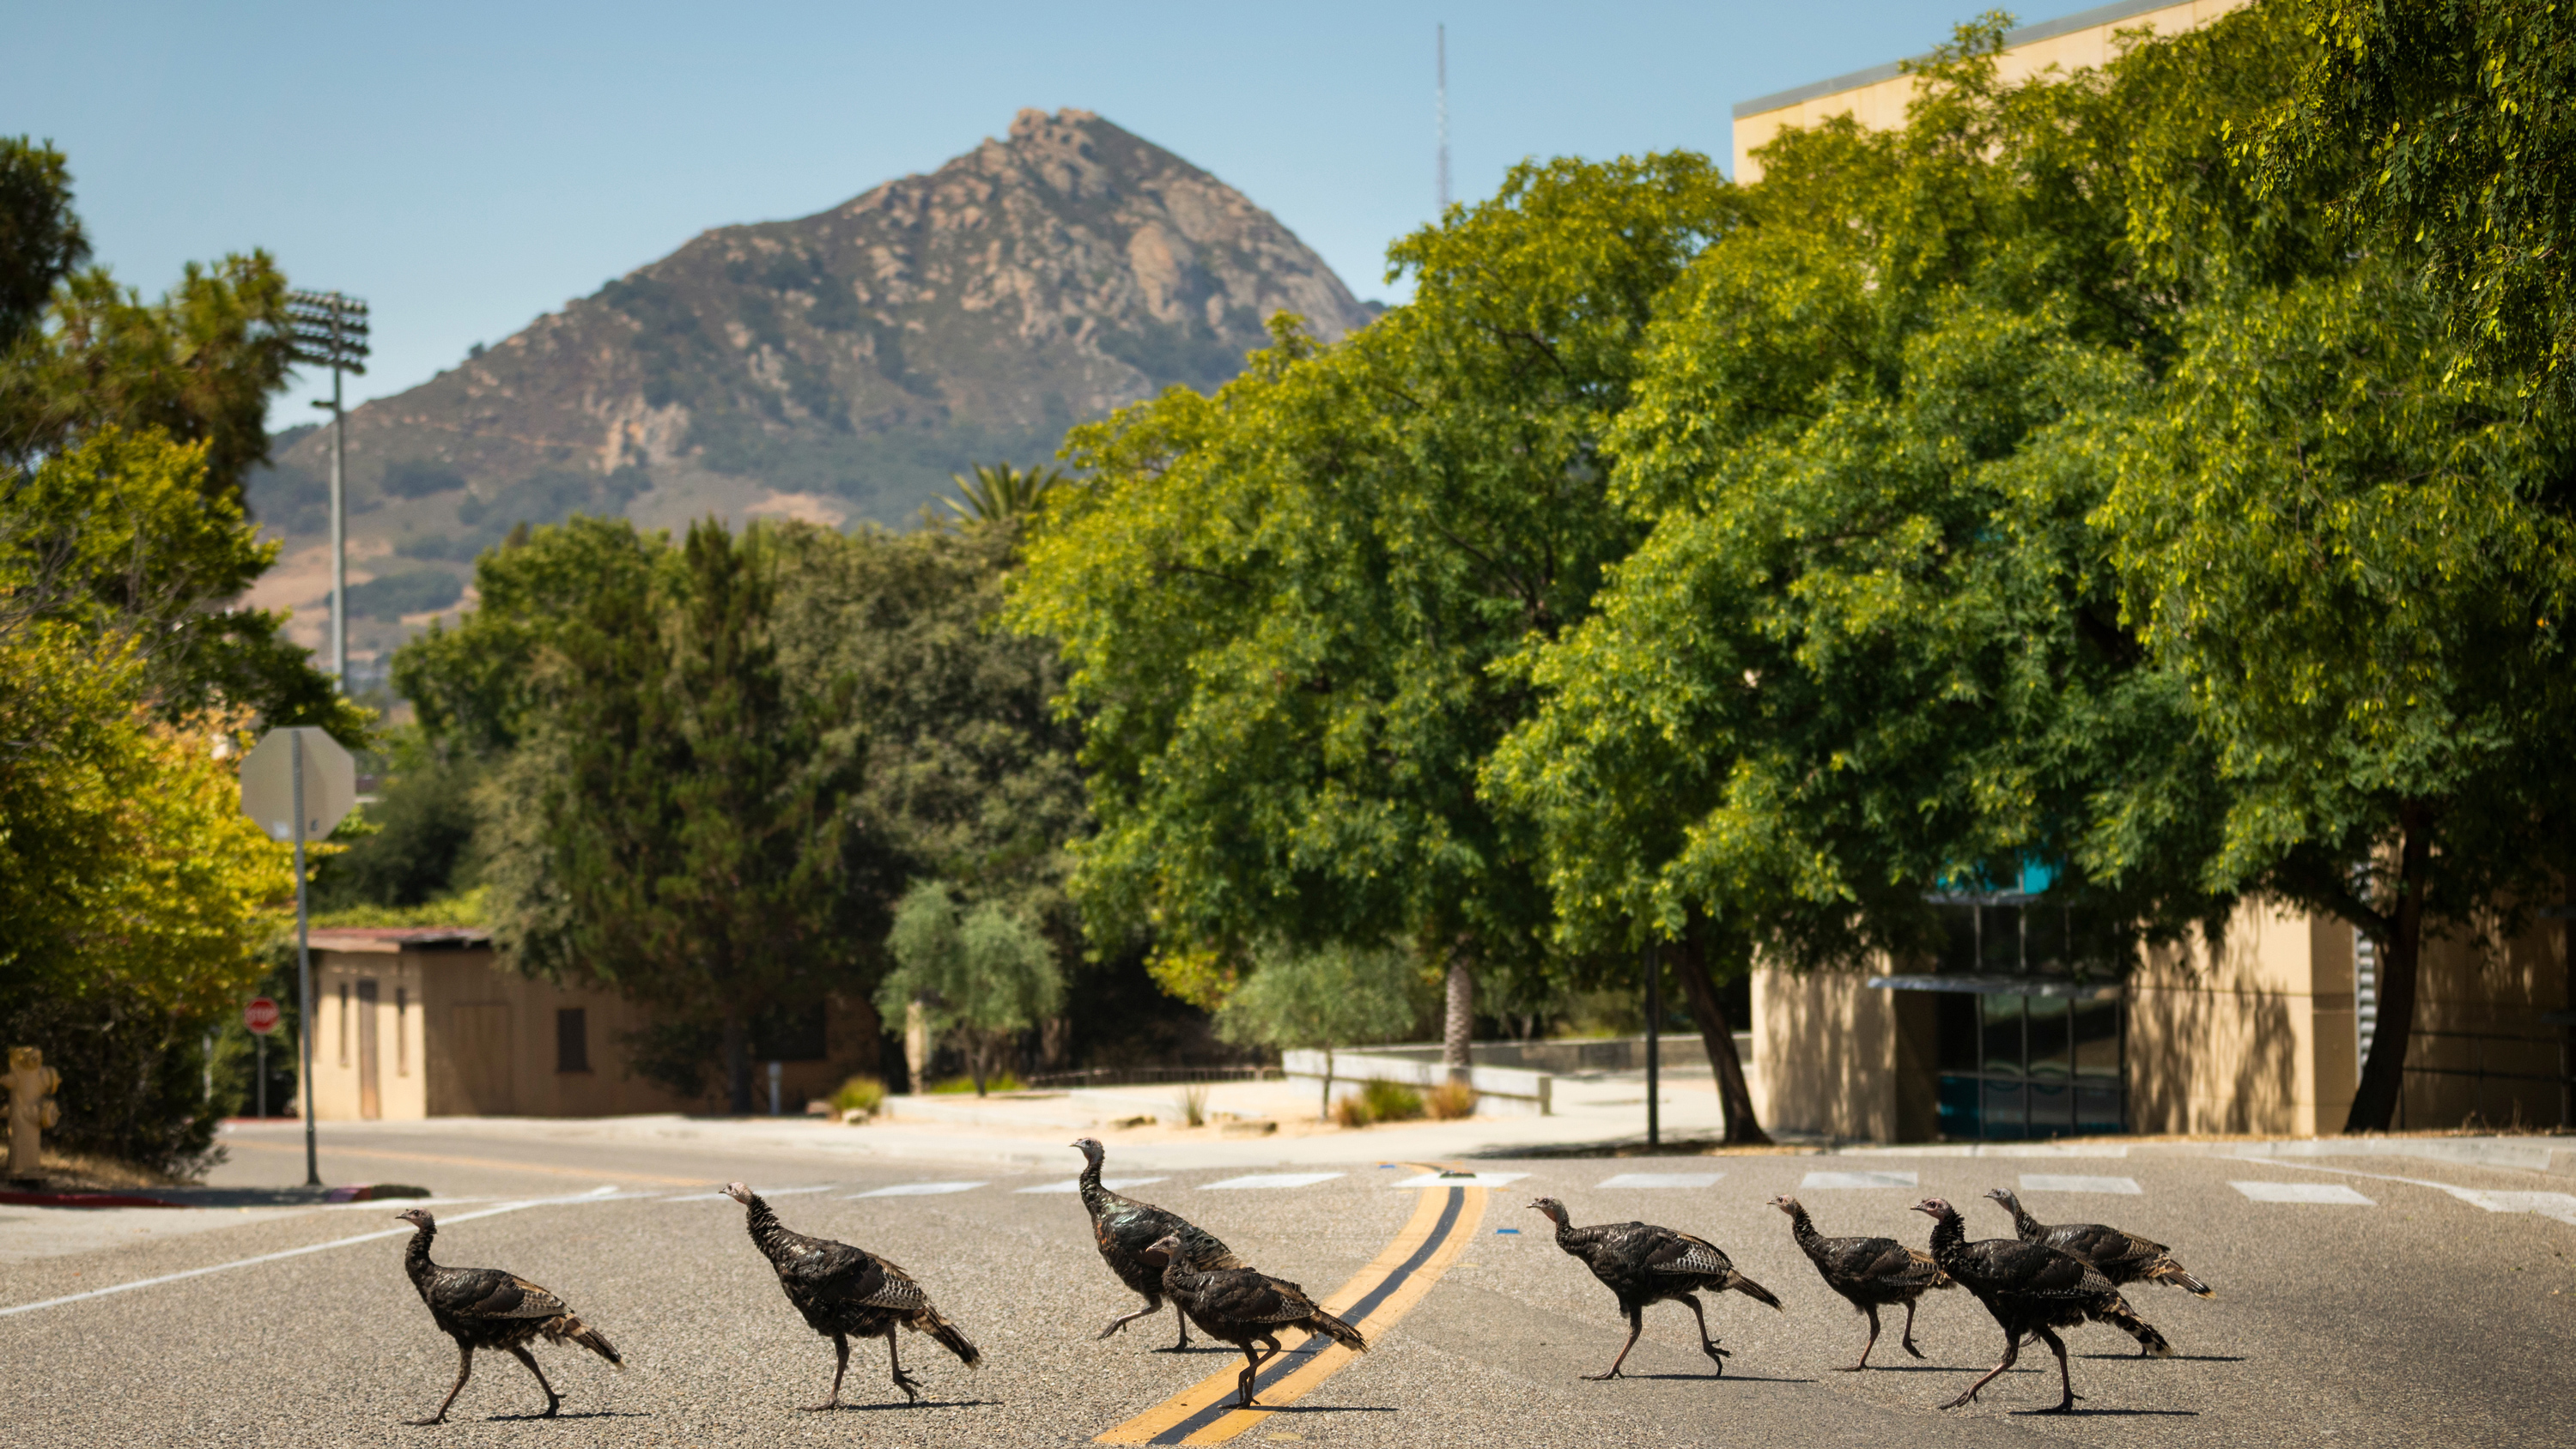 Eight turkies cross a road on Cal Poly's campus in front of Bishop Peak